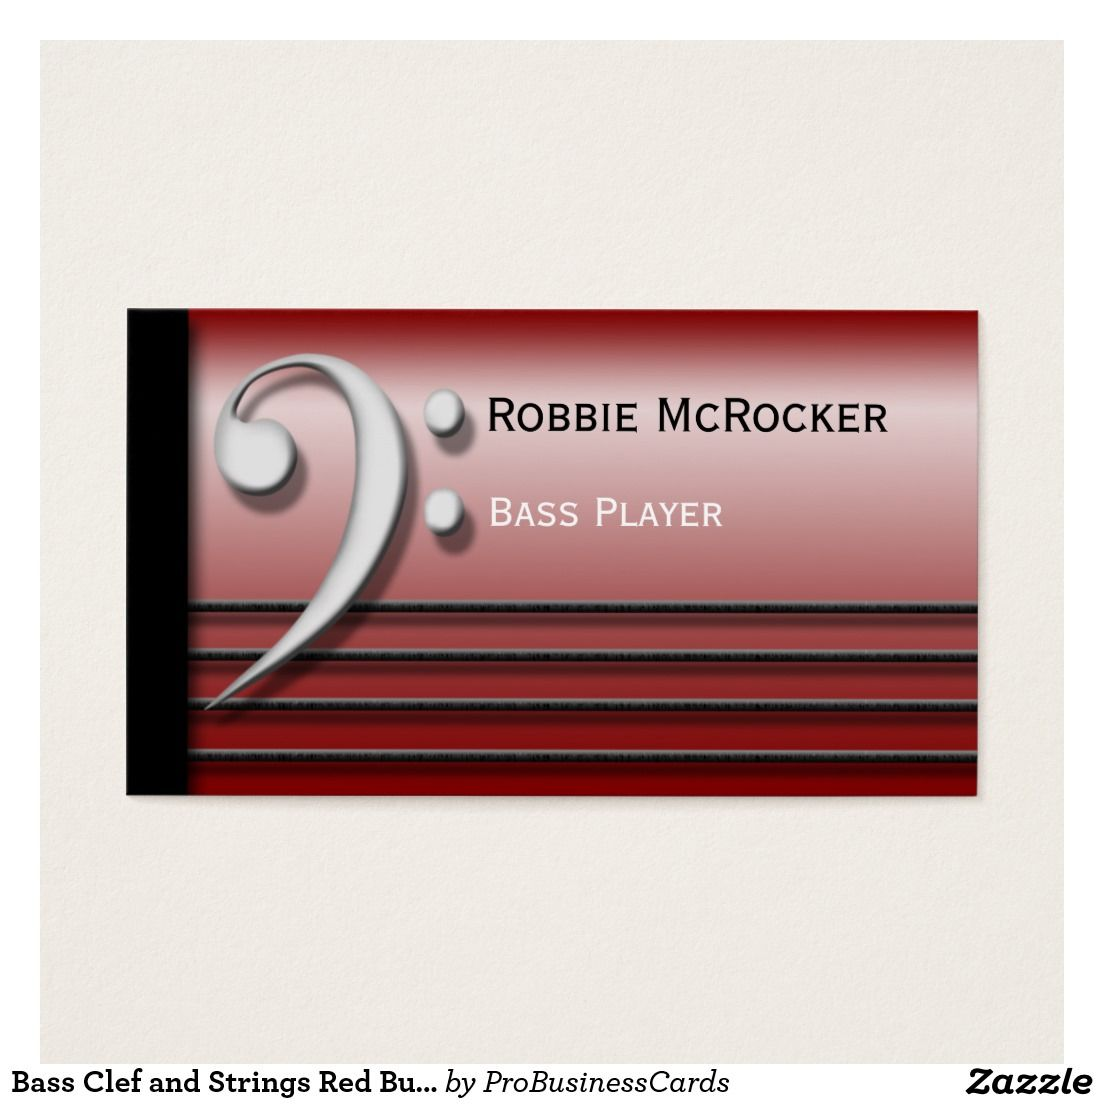 Thank you, Mike in Illinois, for your purchase of these Bass Clef ...